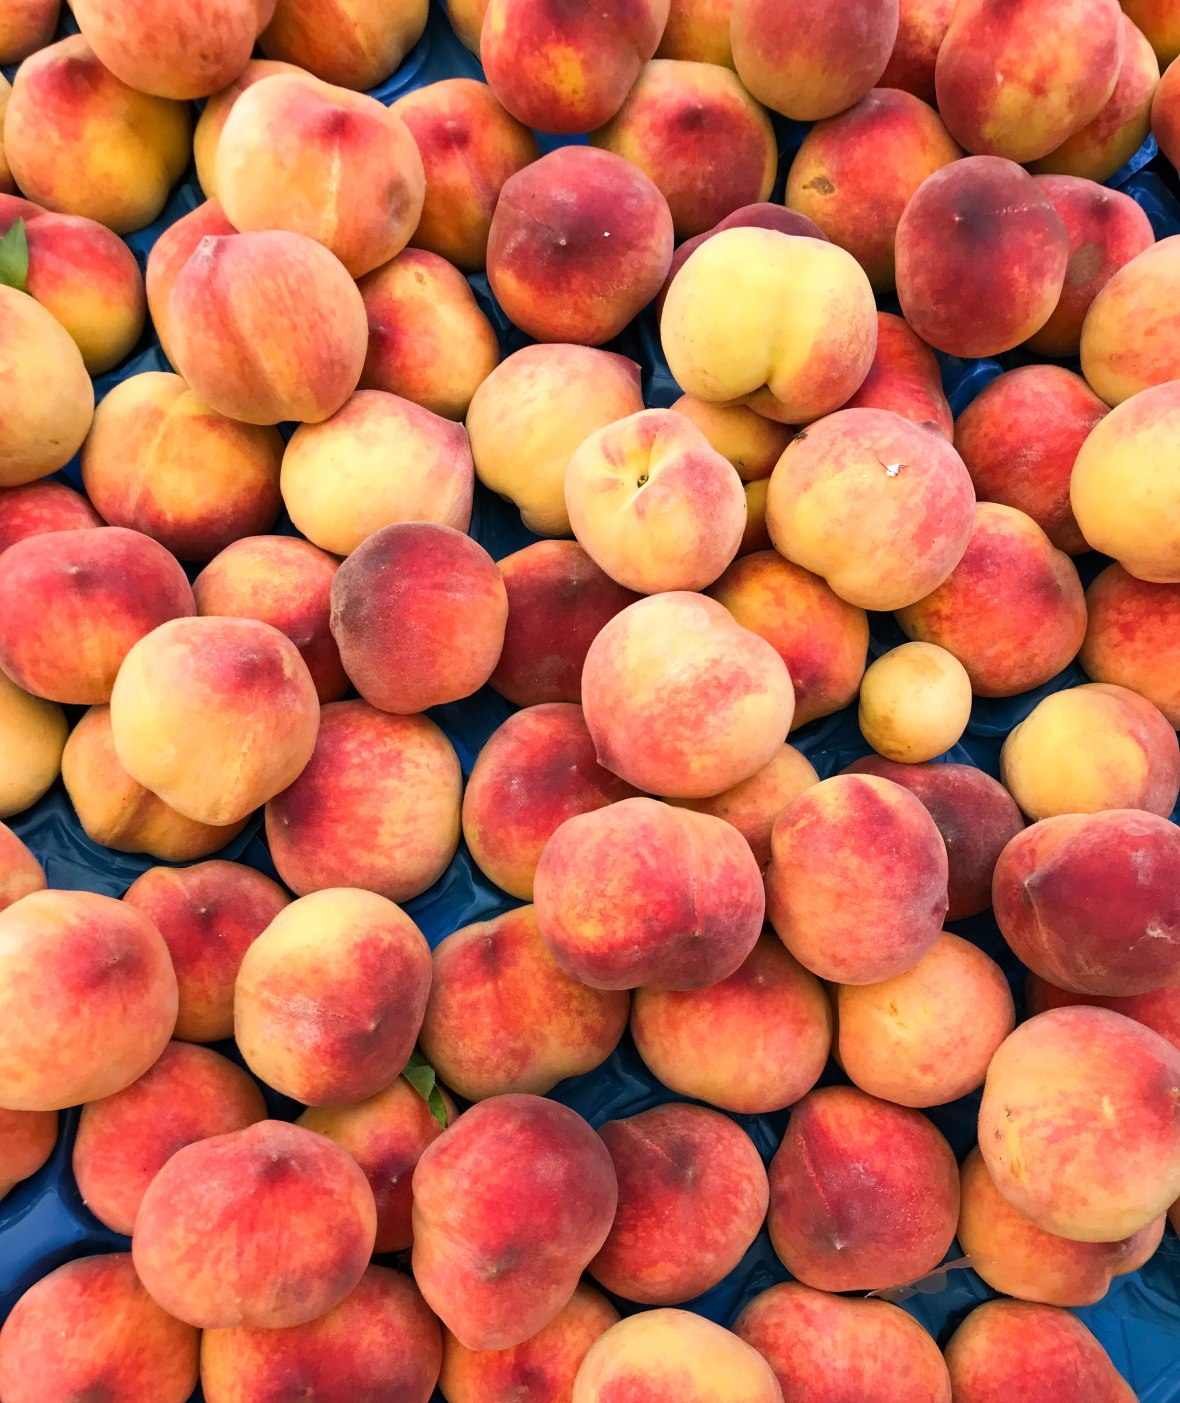 peaches, heybeliada island, adalar, princes islands, istanbul